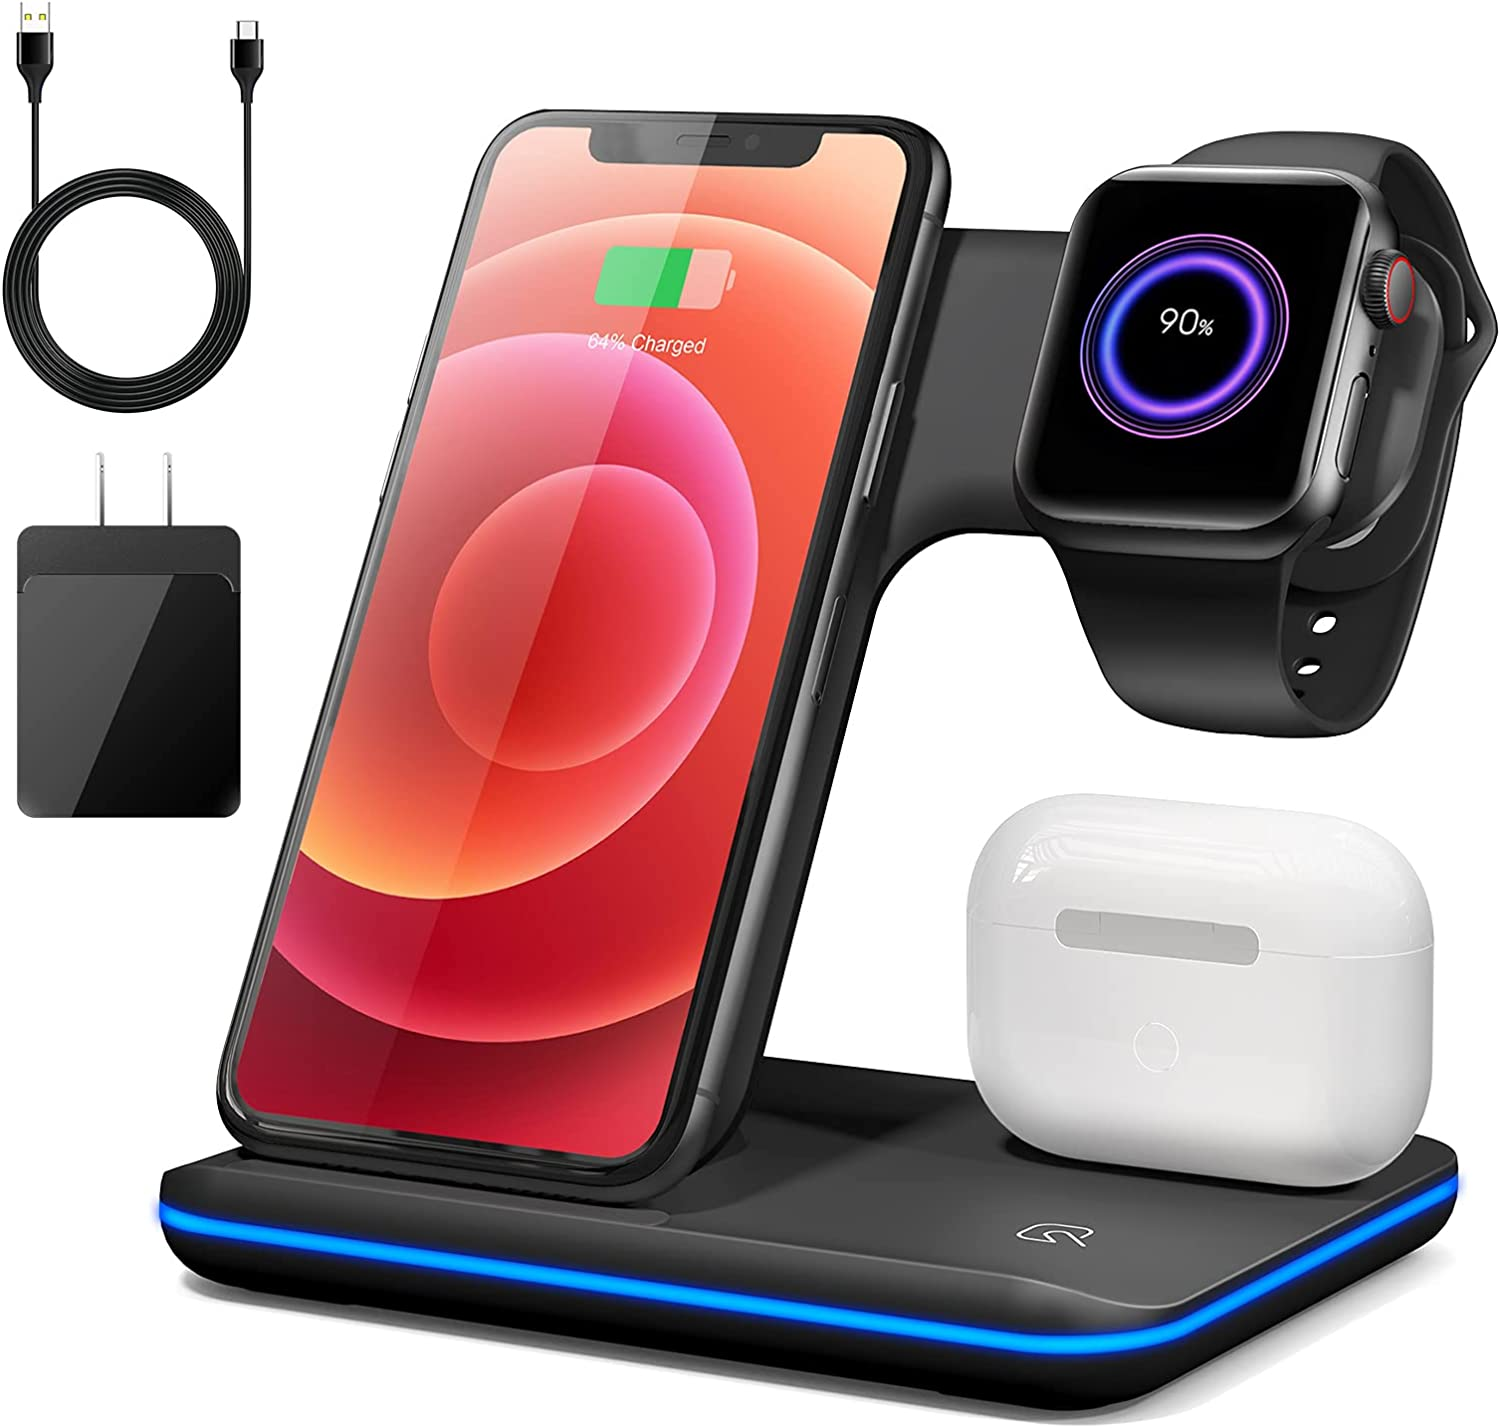 Wireless Charger Stand,3 in 1 Wireless Charging Station,15W Fast Charging Pad Dock for Apple Watch Series SE 6~2,AirPods,iPhone 12/11 Pro/X/Xr/Xs/8 Plus,Samsung,Qi-Certified Phones(with QC3.0 Adapter)